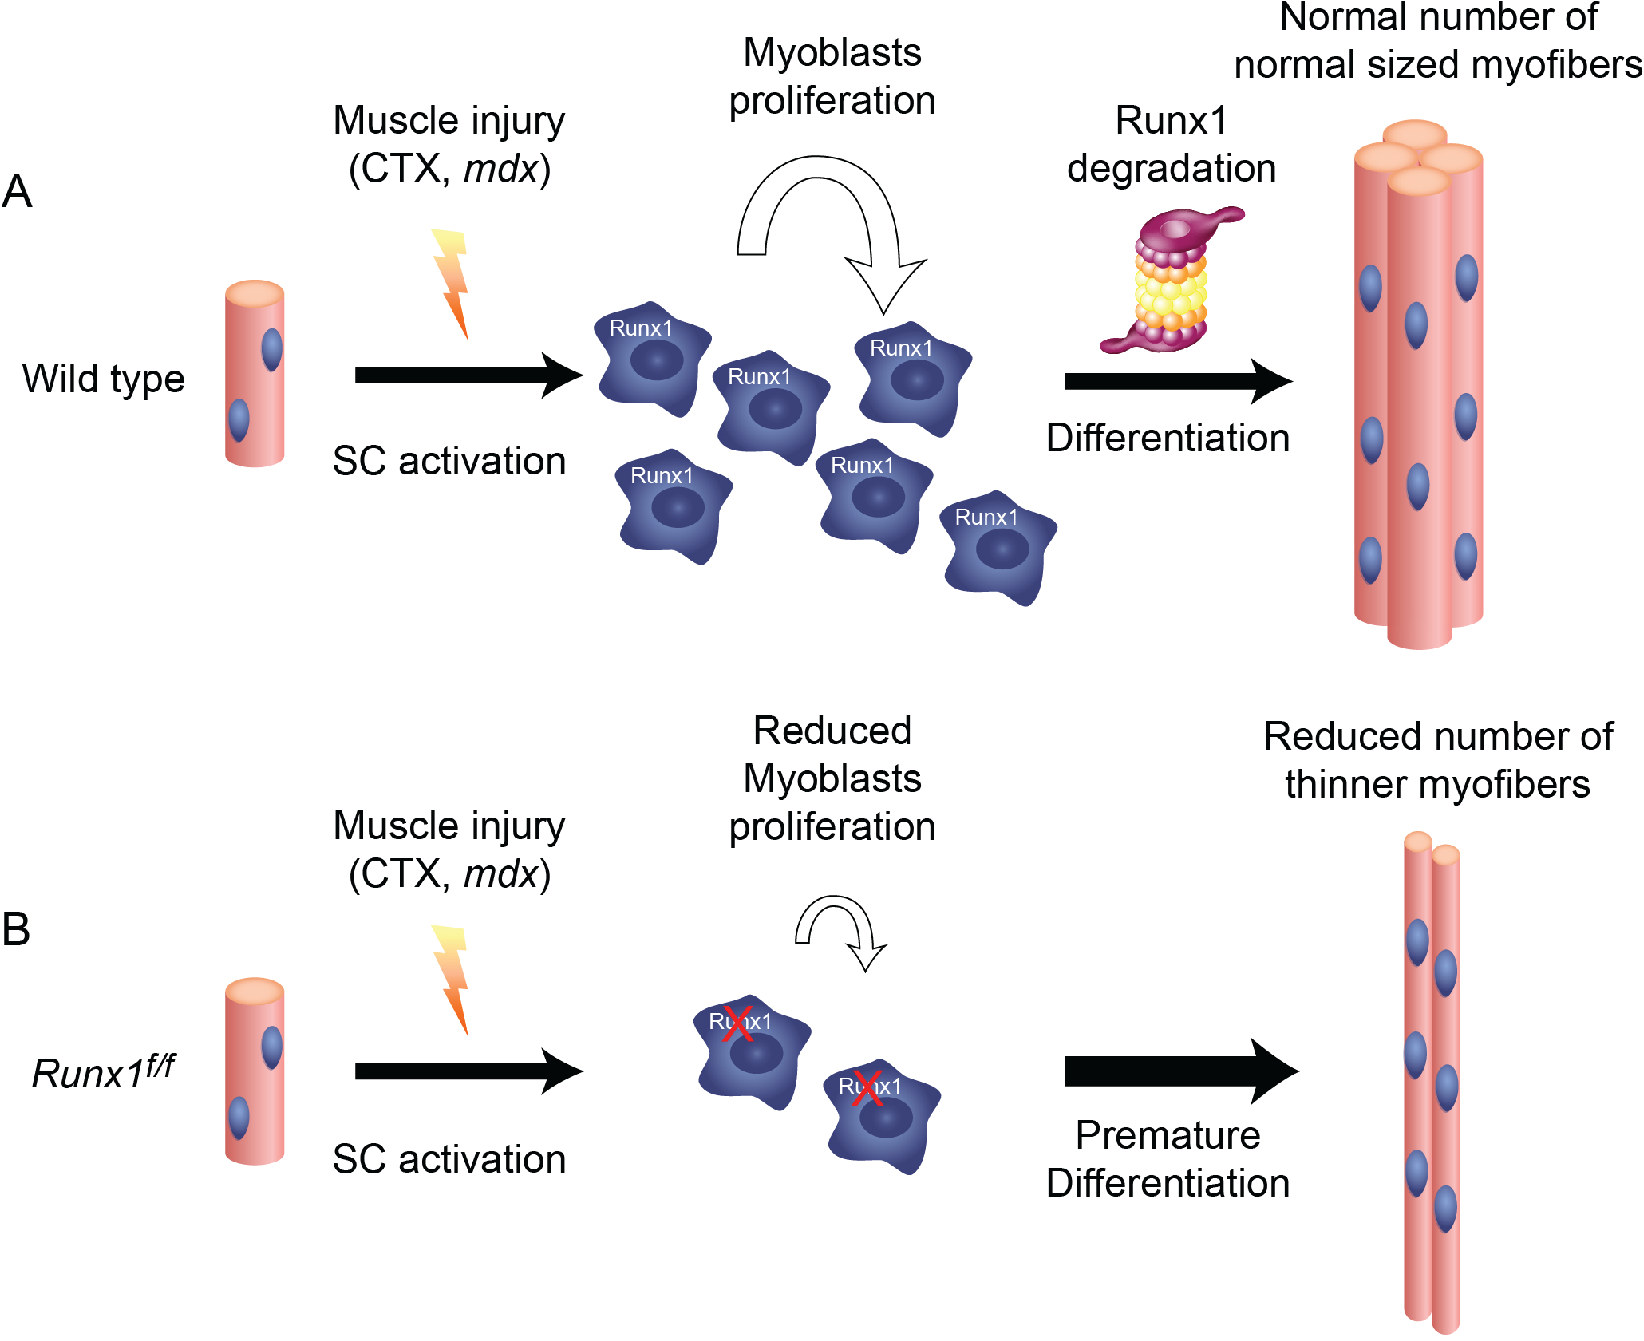 Runx1 is required for myoblast proliferation during muscle regeneration.